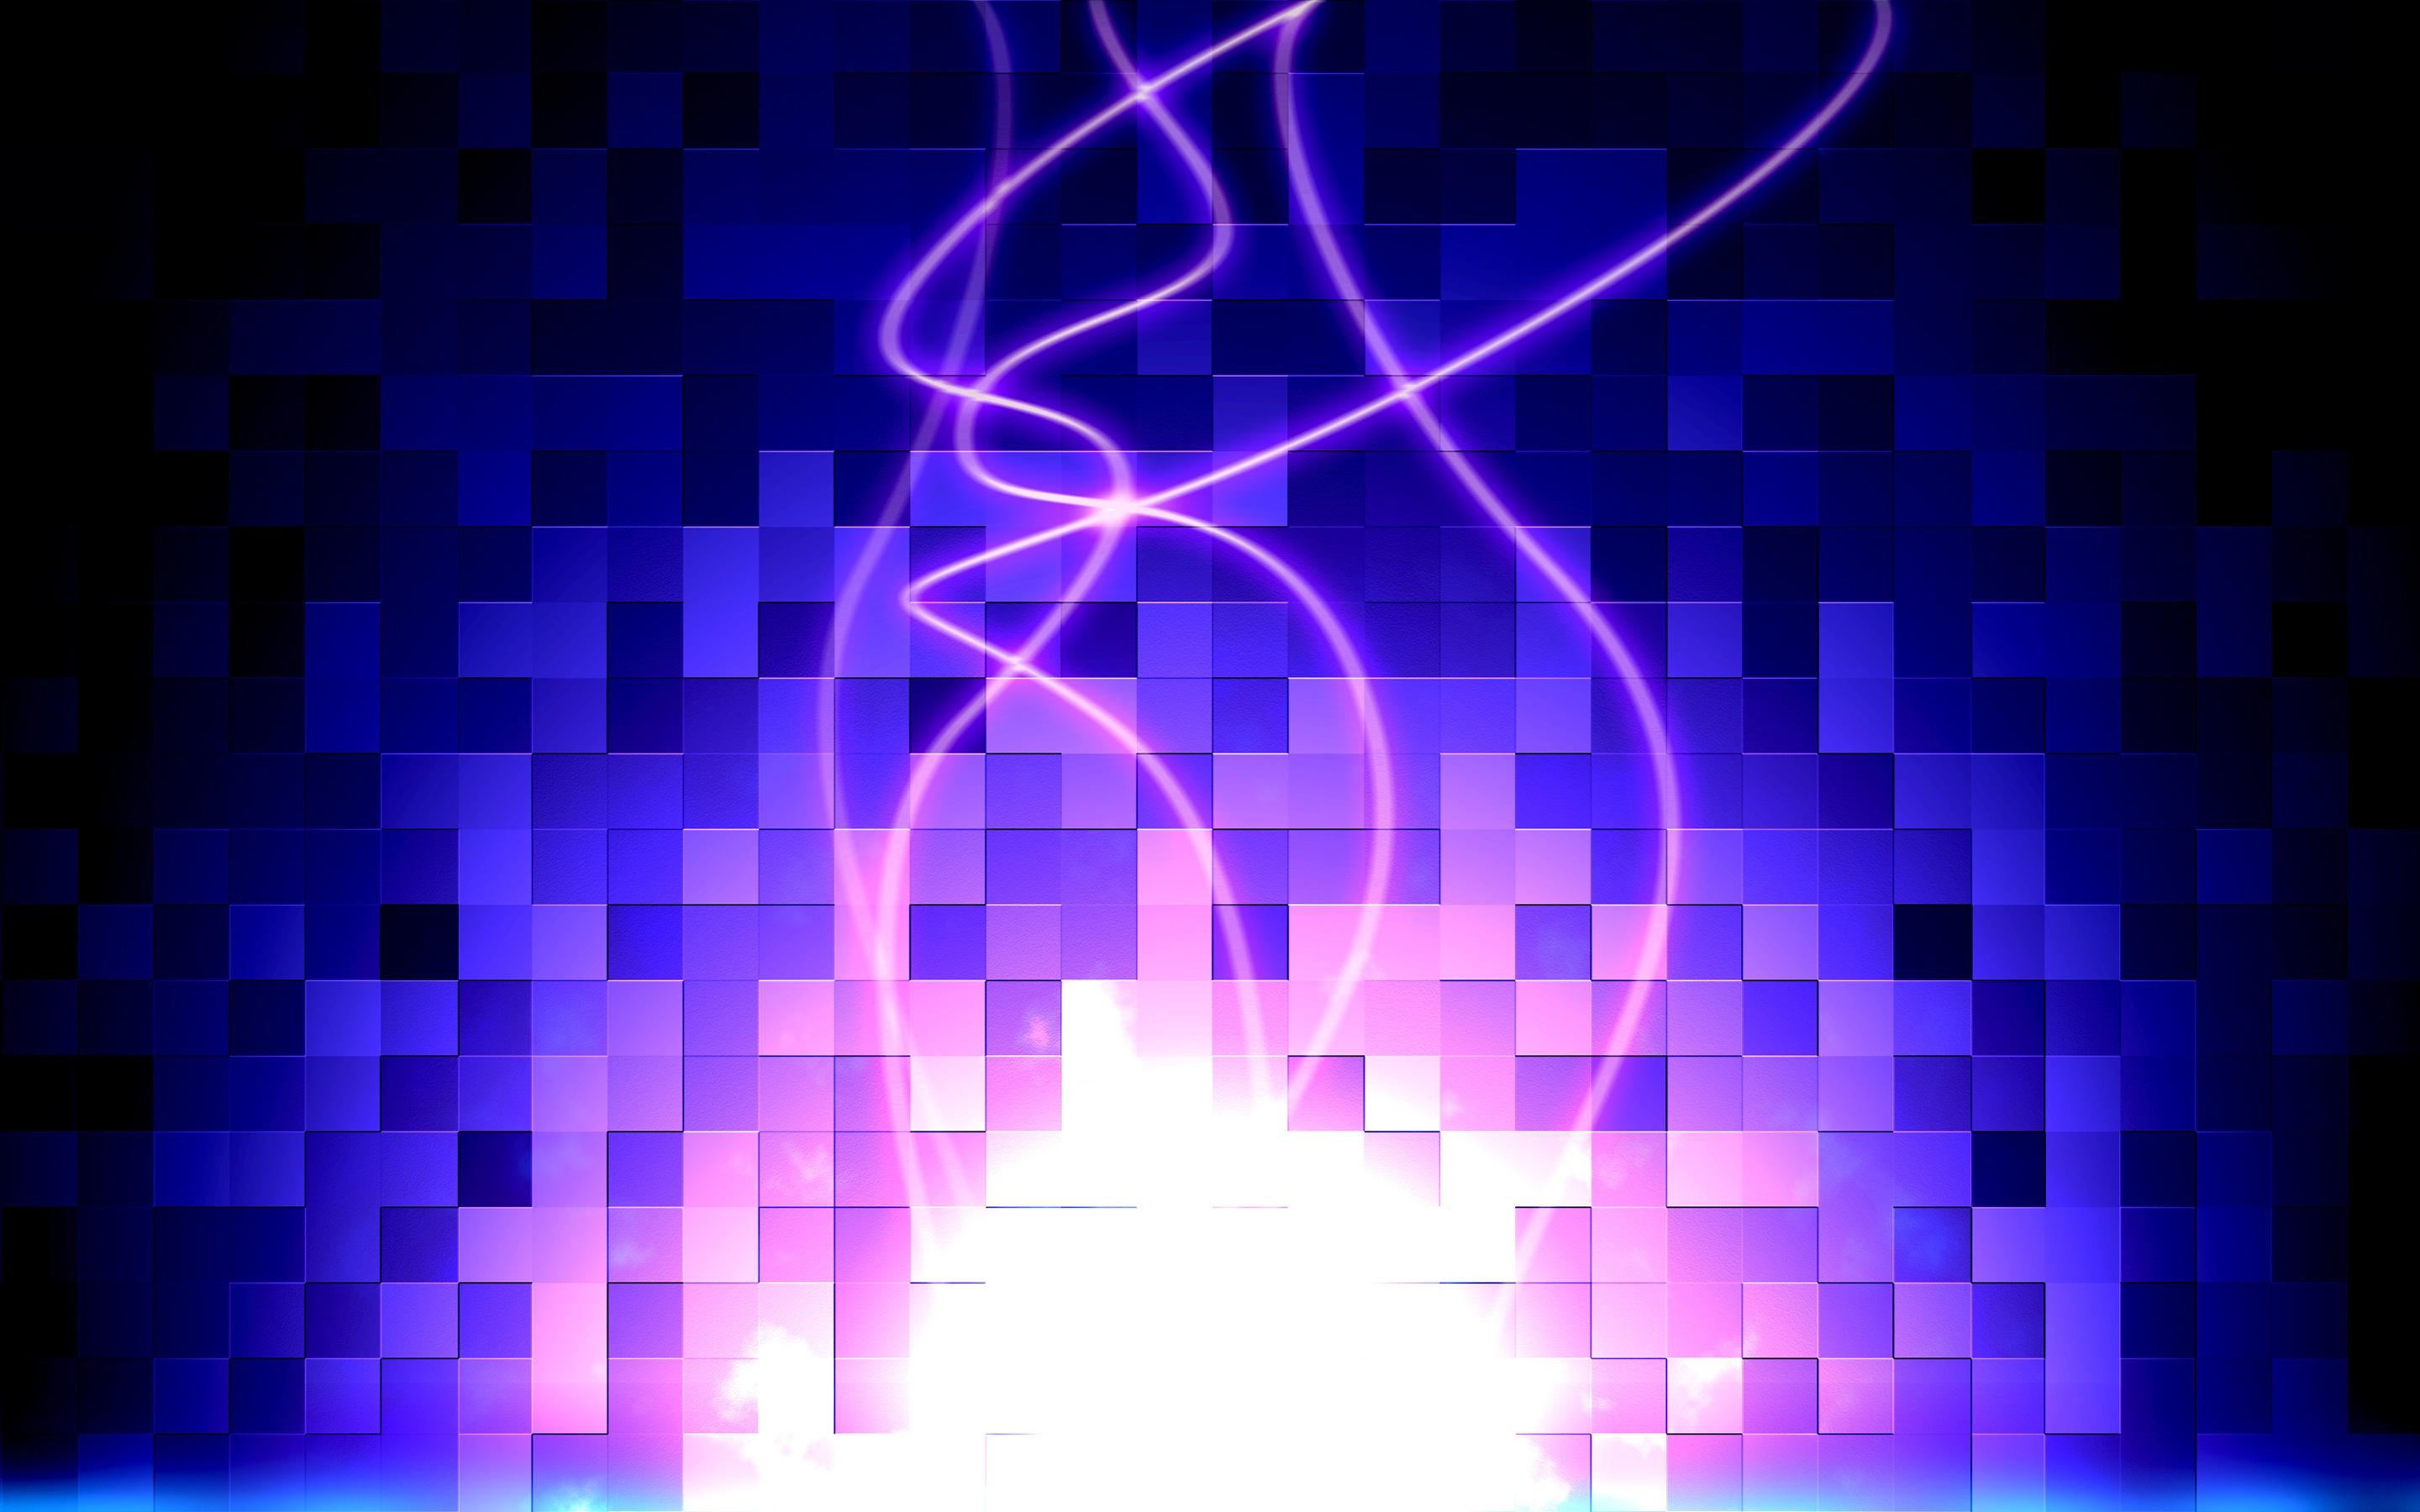 Purple Blue Abstract Cubes 3D Background Wallpaper 5455 HD 2880x1800